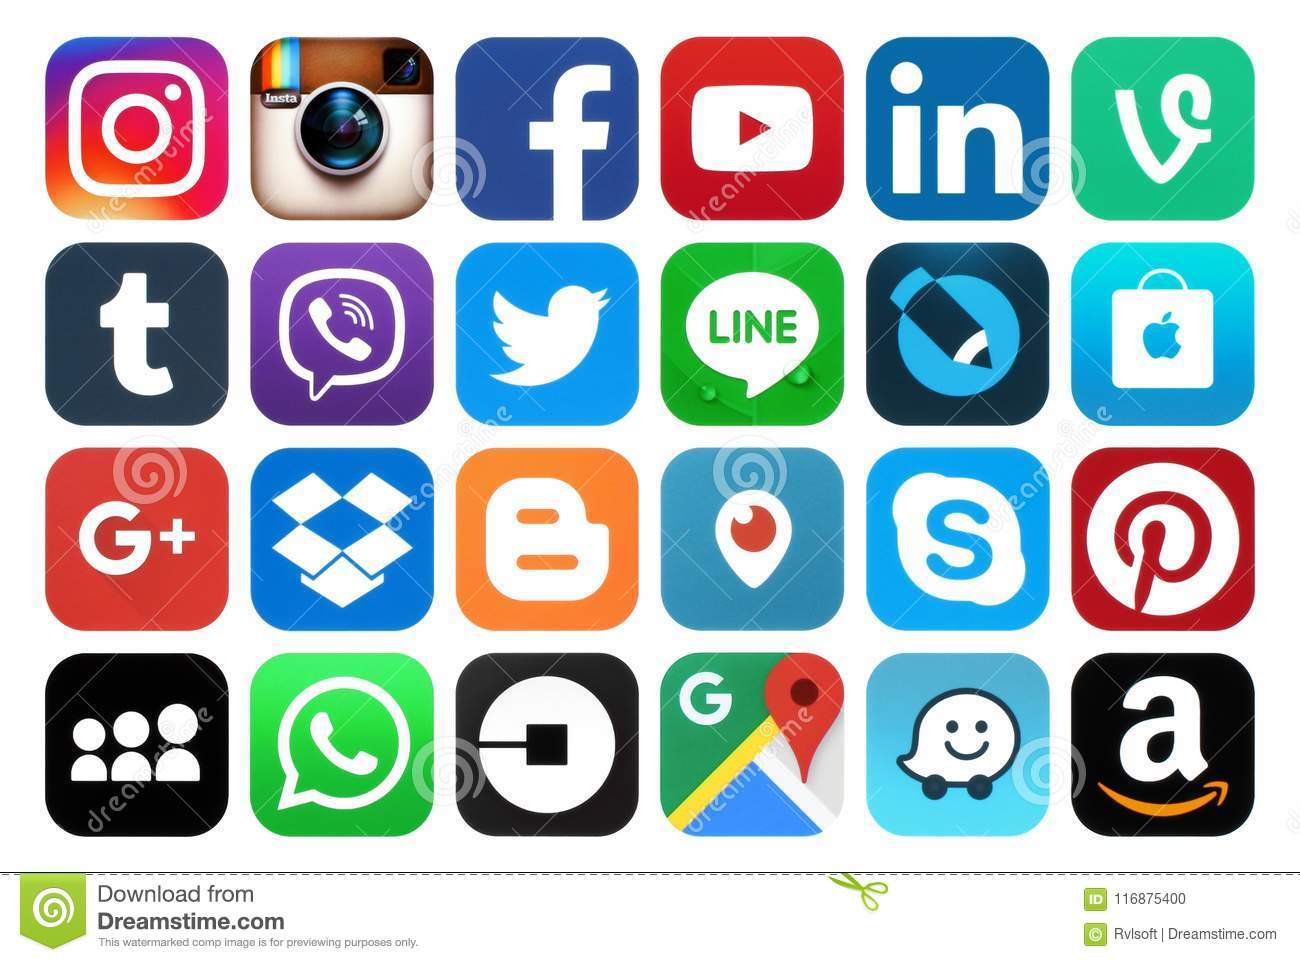 Collection of popular social media icons